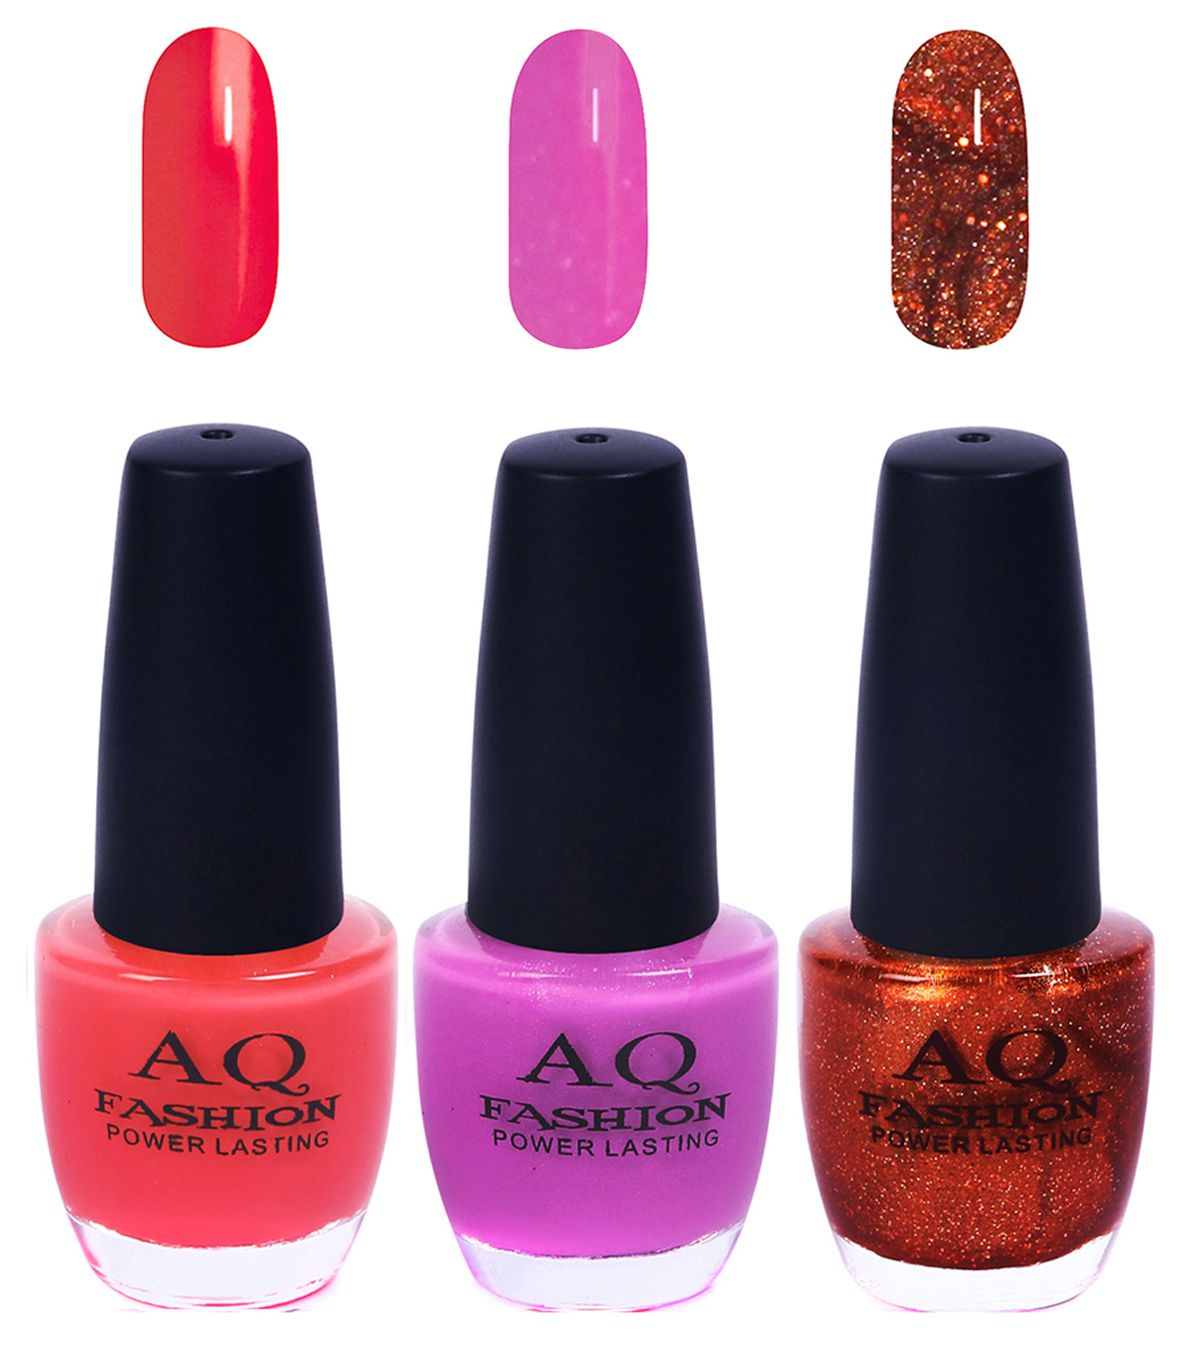 AQ Fashion Nail Polish Neon Colors Matte 36 ml